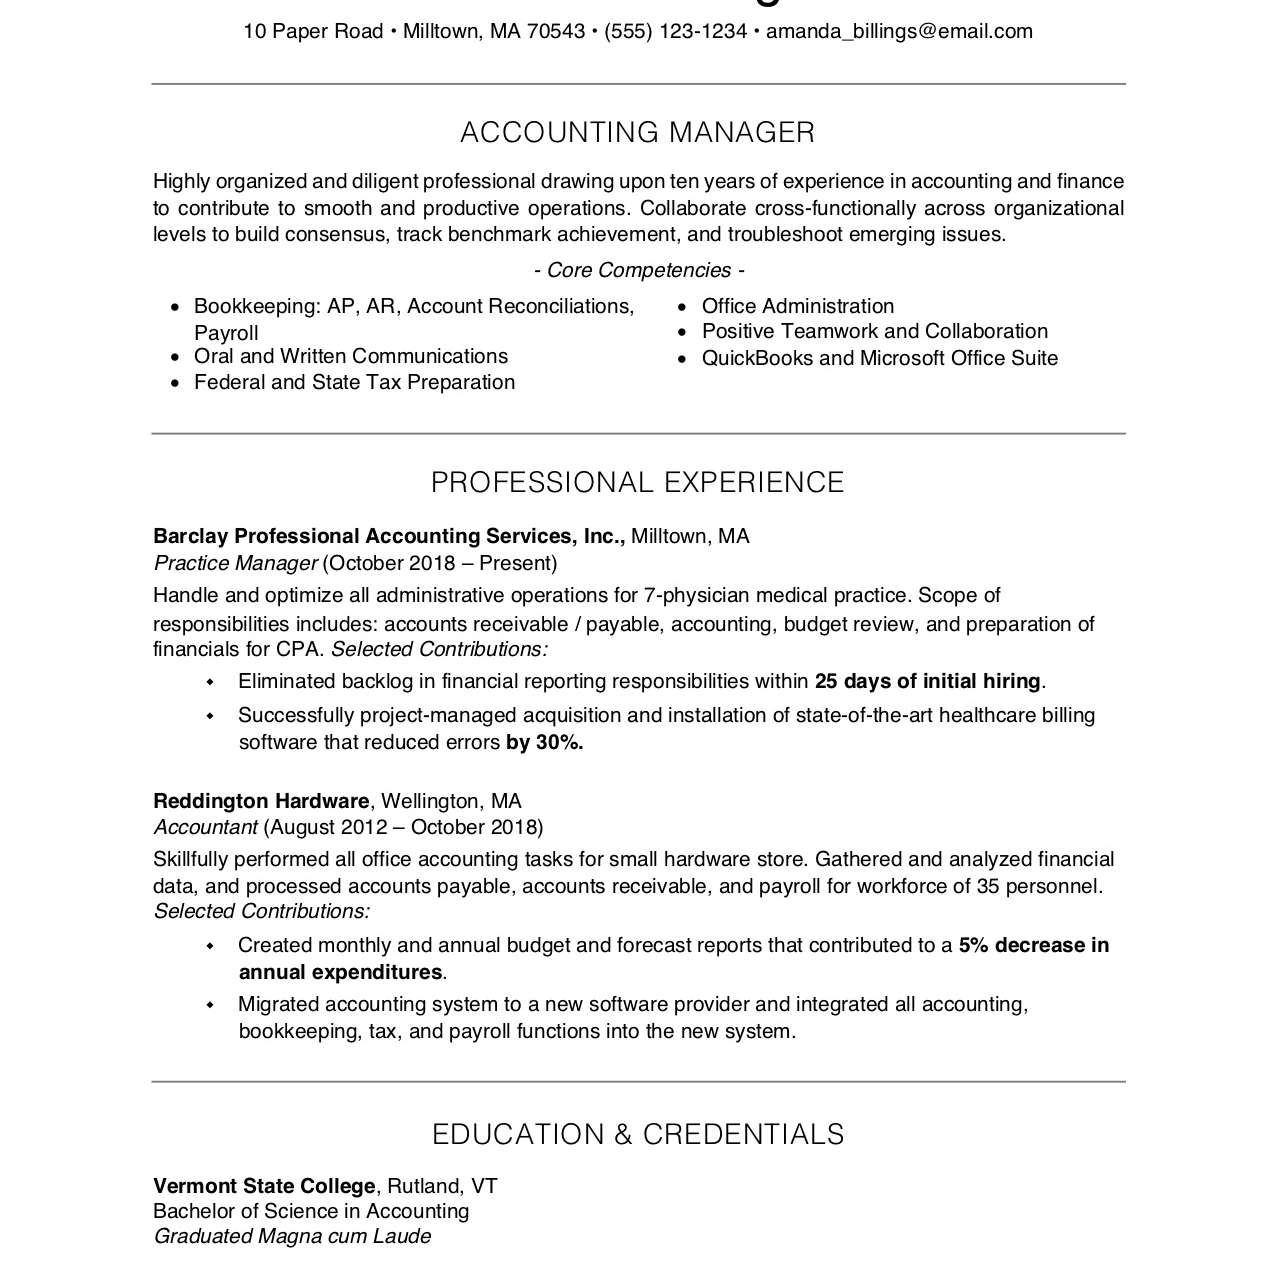 free professional resume examples and writing tips 2063596res1 industrial engineer chef Resume Writing A Professional Resume